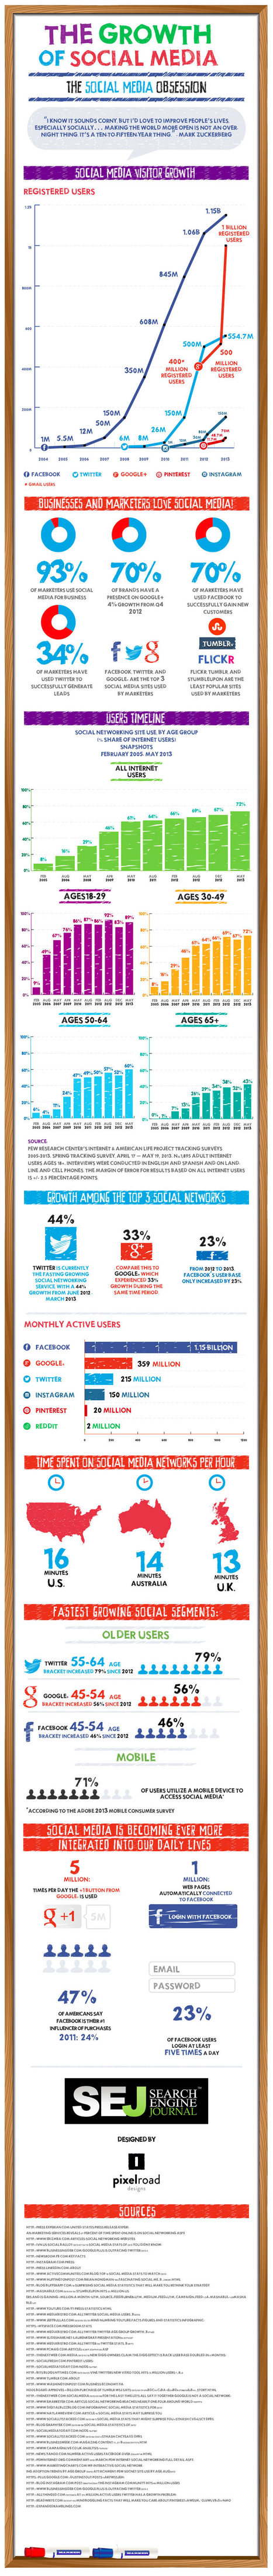 The Growth and Obsession of Social Media Management an infographic /@BerriePelser | WordPress Google SEO and Social Media | Scoop.it